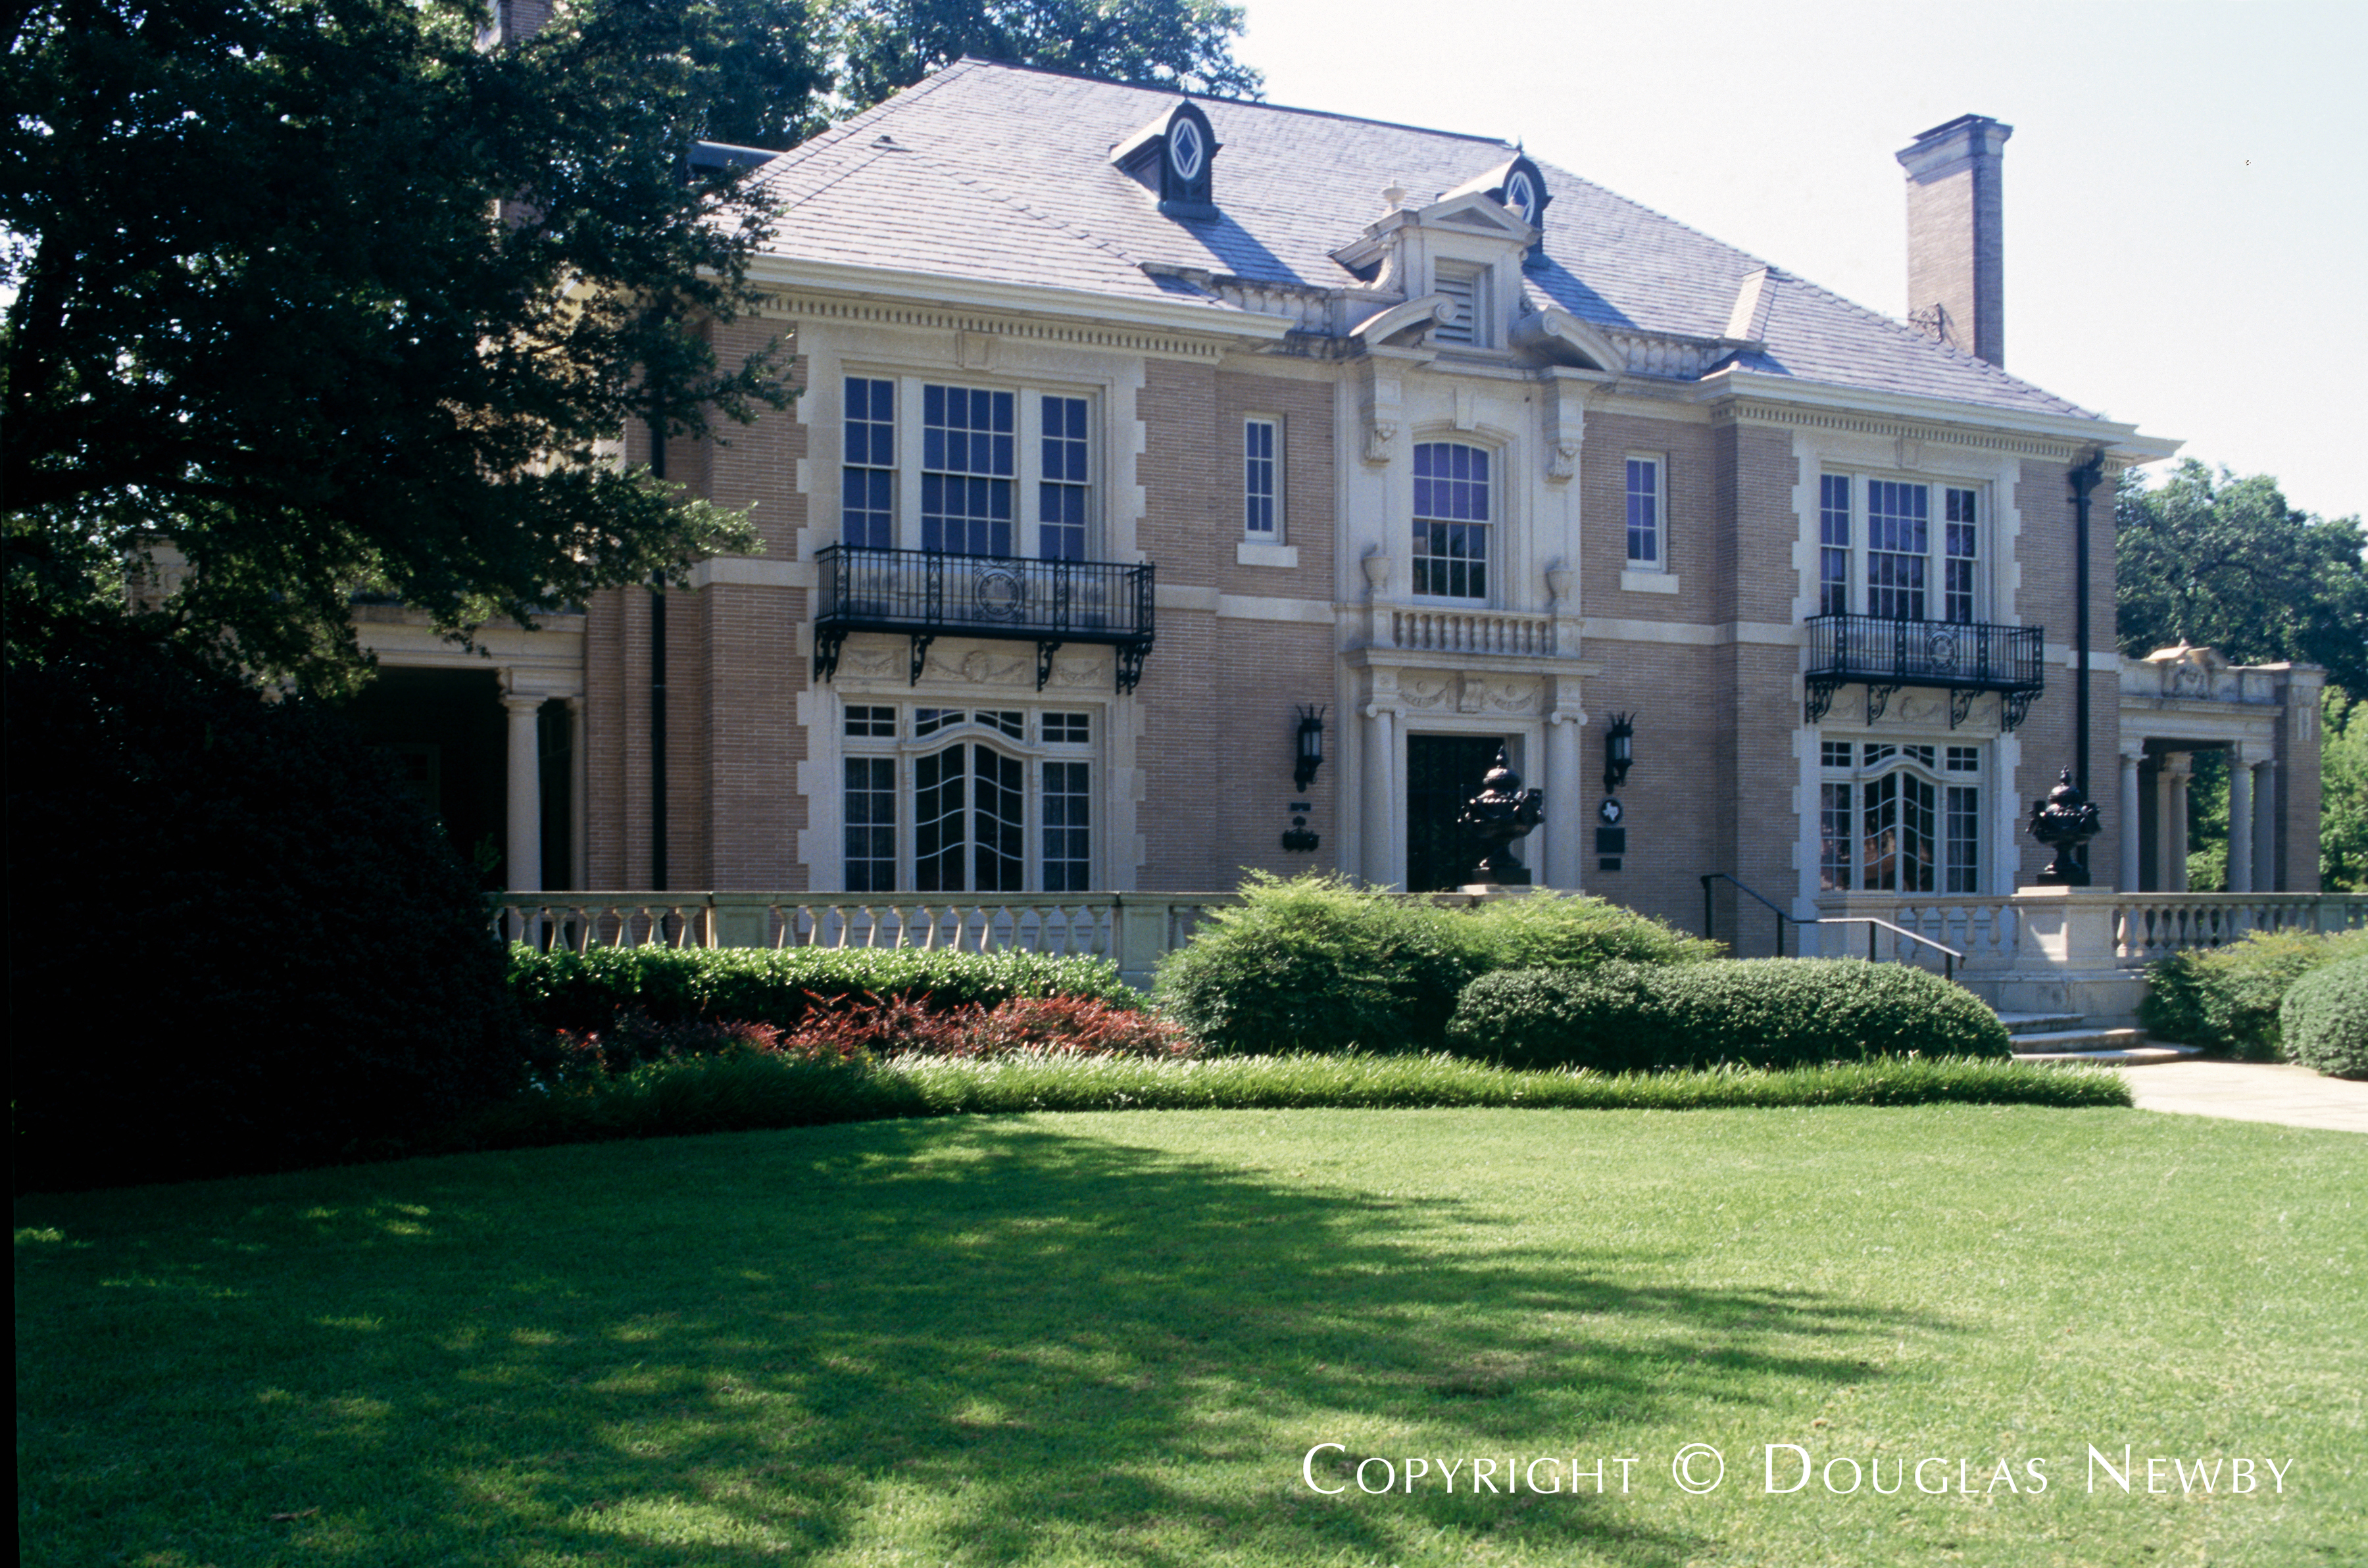 Architect Henry B. Thomson Designed Home in Munger Place and Swiss Avenue